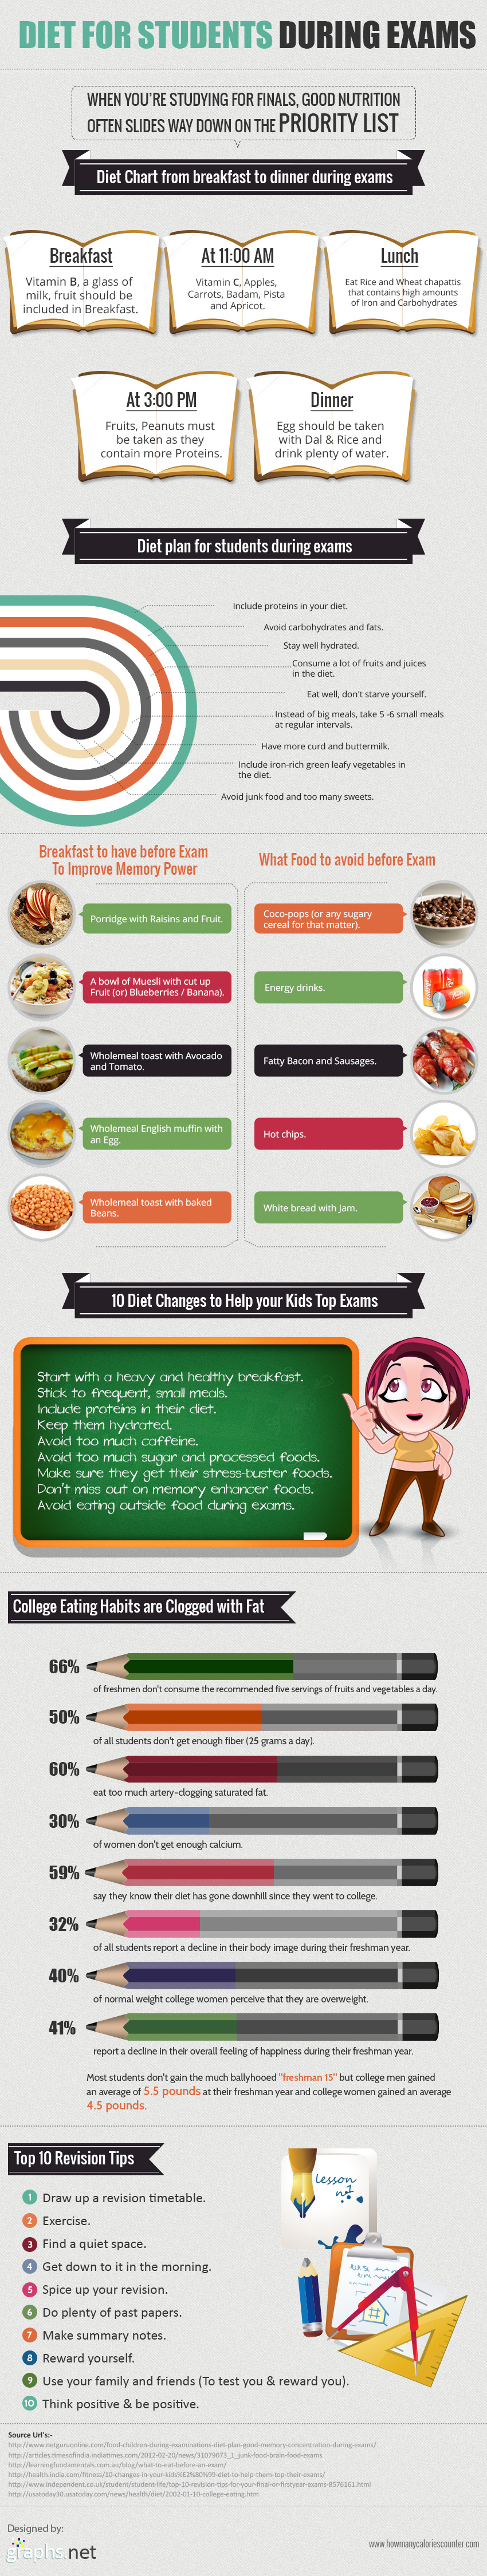 Diet-for-Students-during-exams